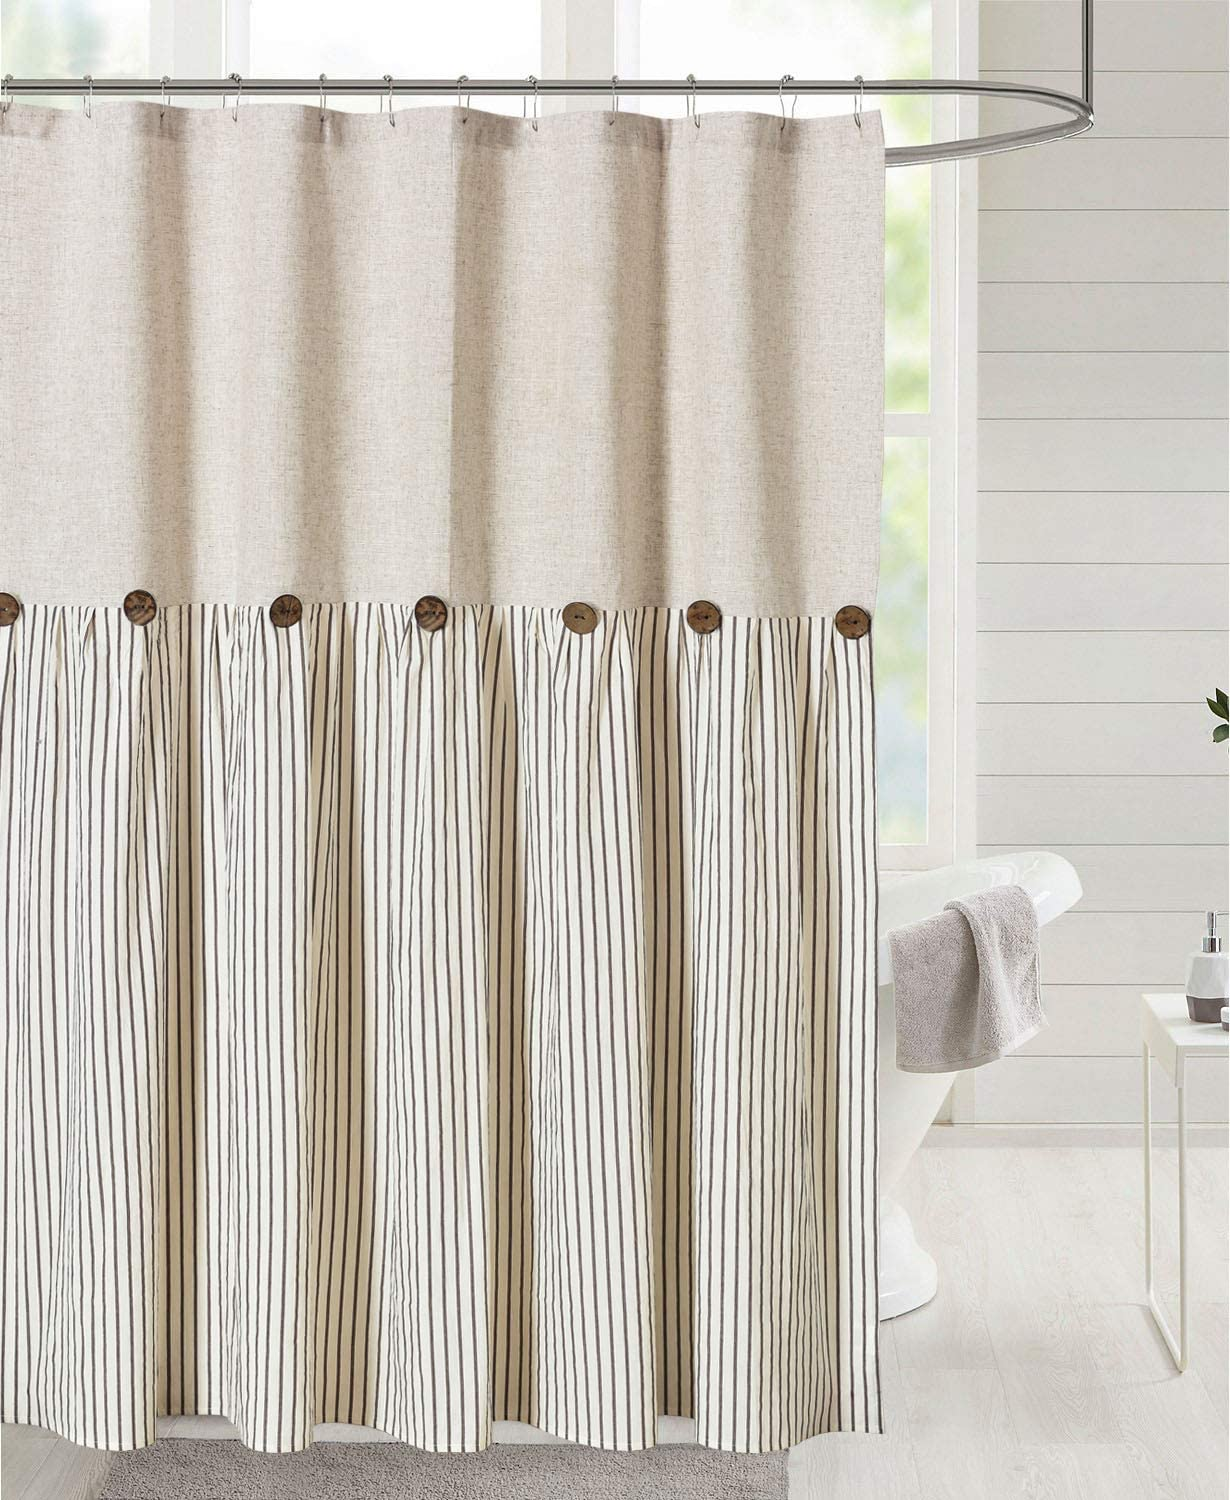 DOSLY IDÉES Linen Button Farmhouse Beige Shower Curtain,Linen and Cotton Woven Fabric,Pleated Brown Stripe,Country Style,72x72 in